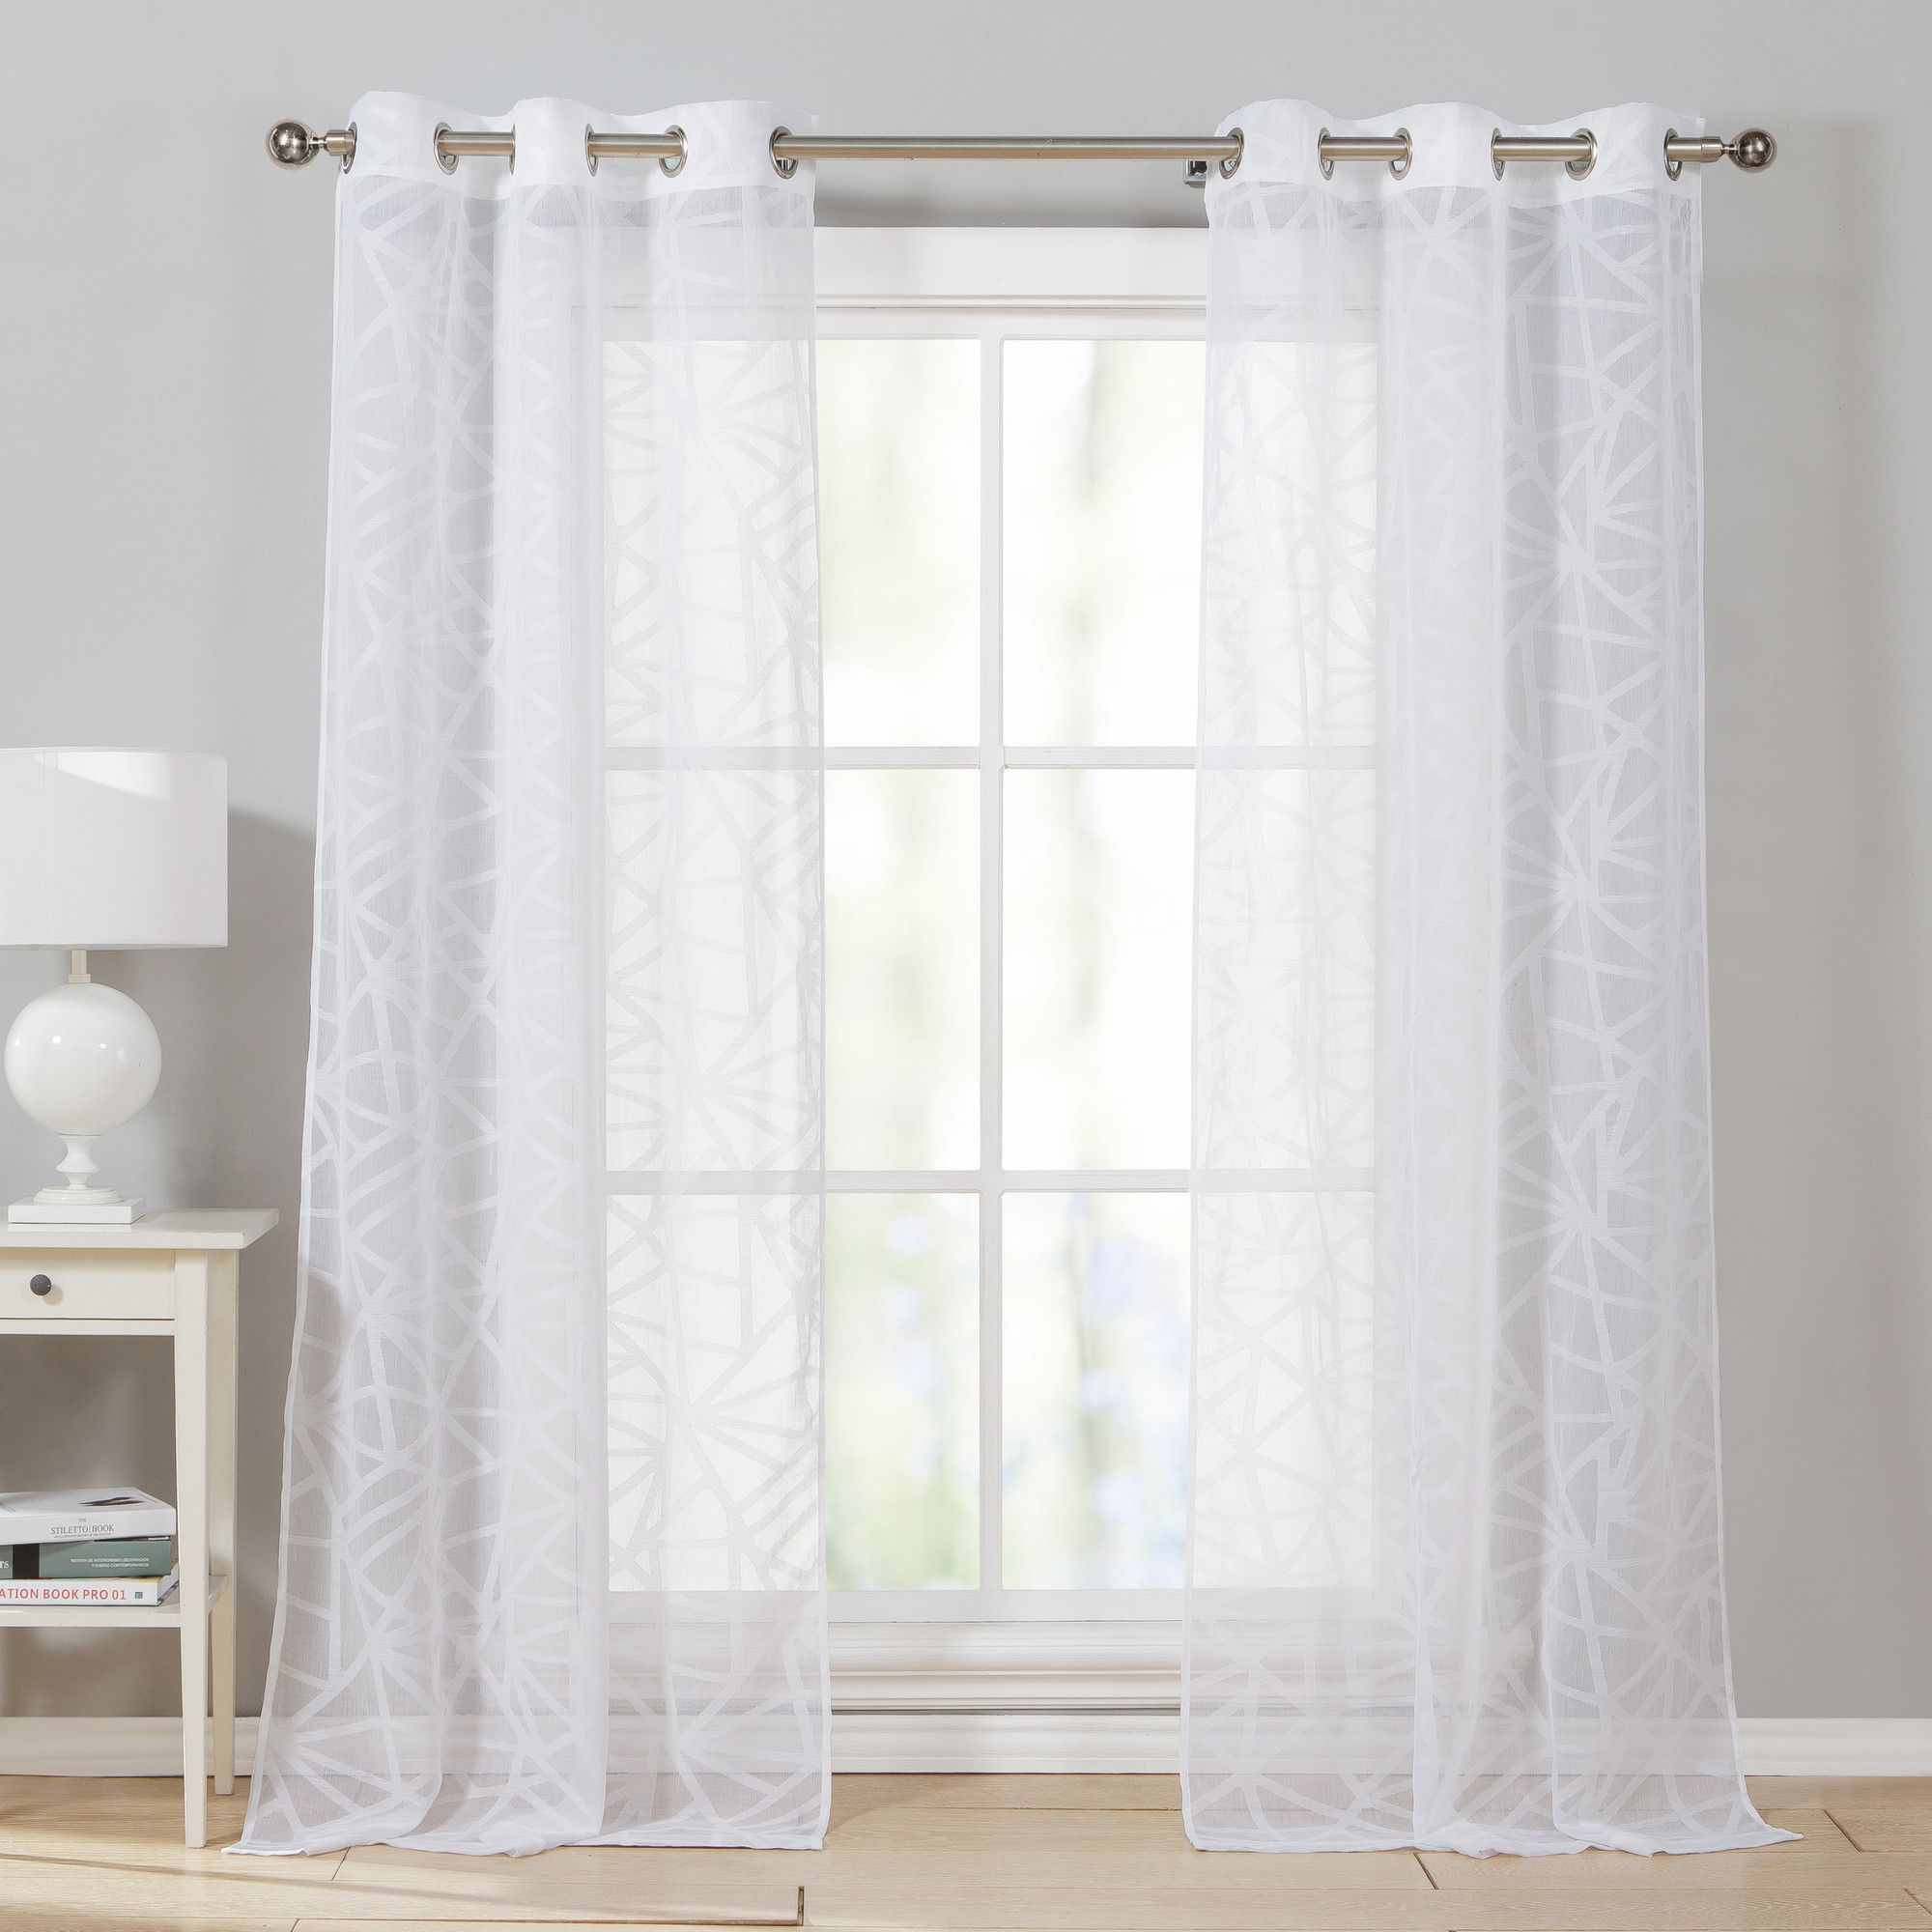 Window coverings types  romain curtain panels  products  pinterest  products